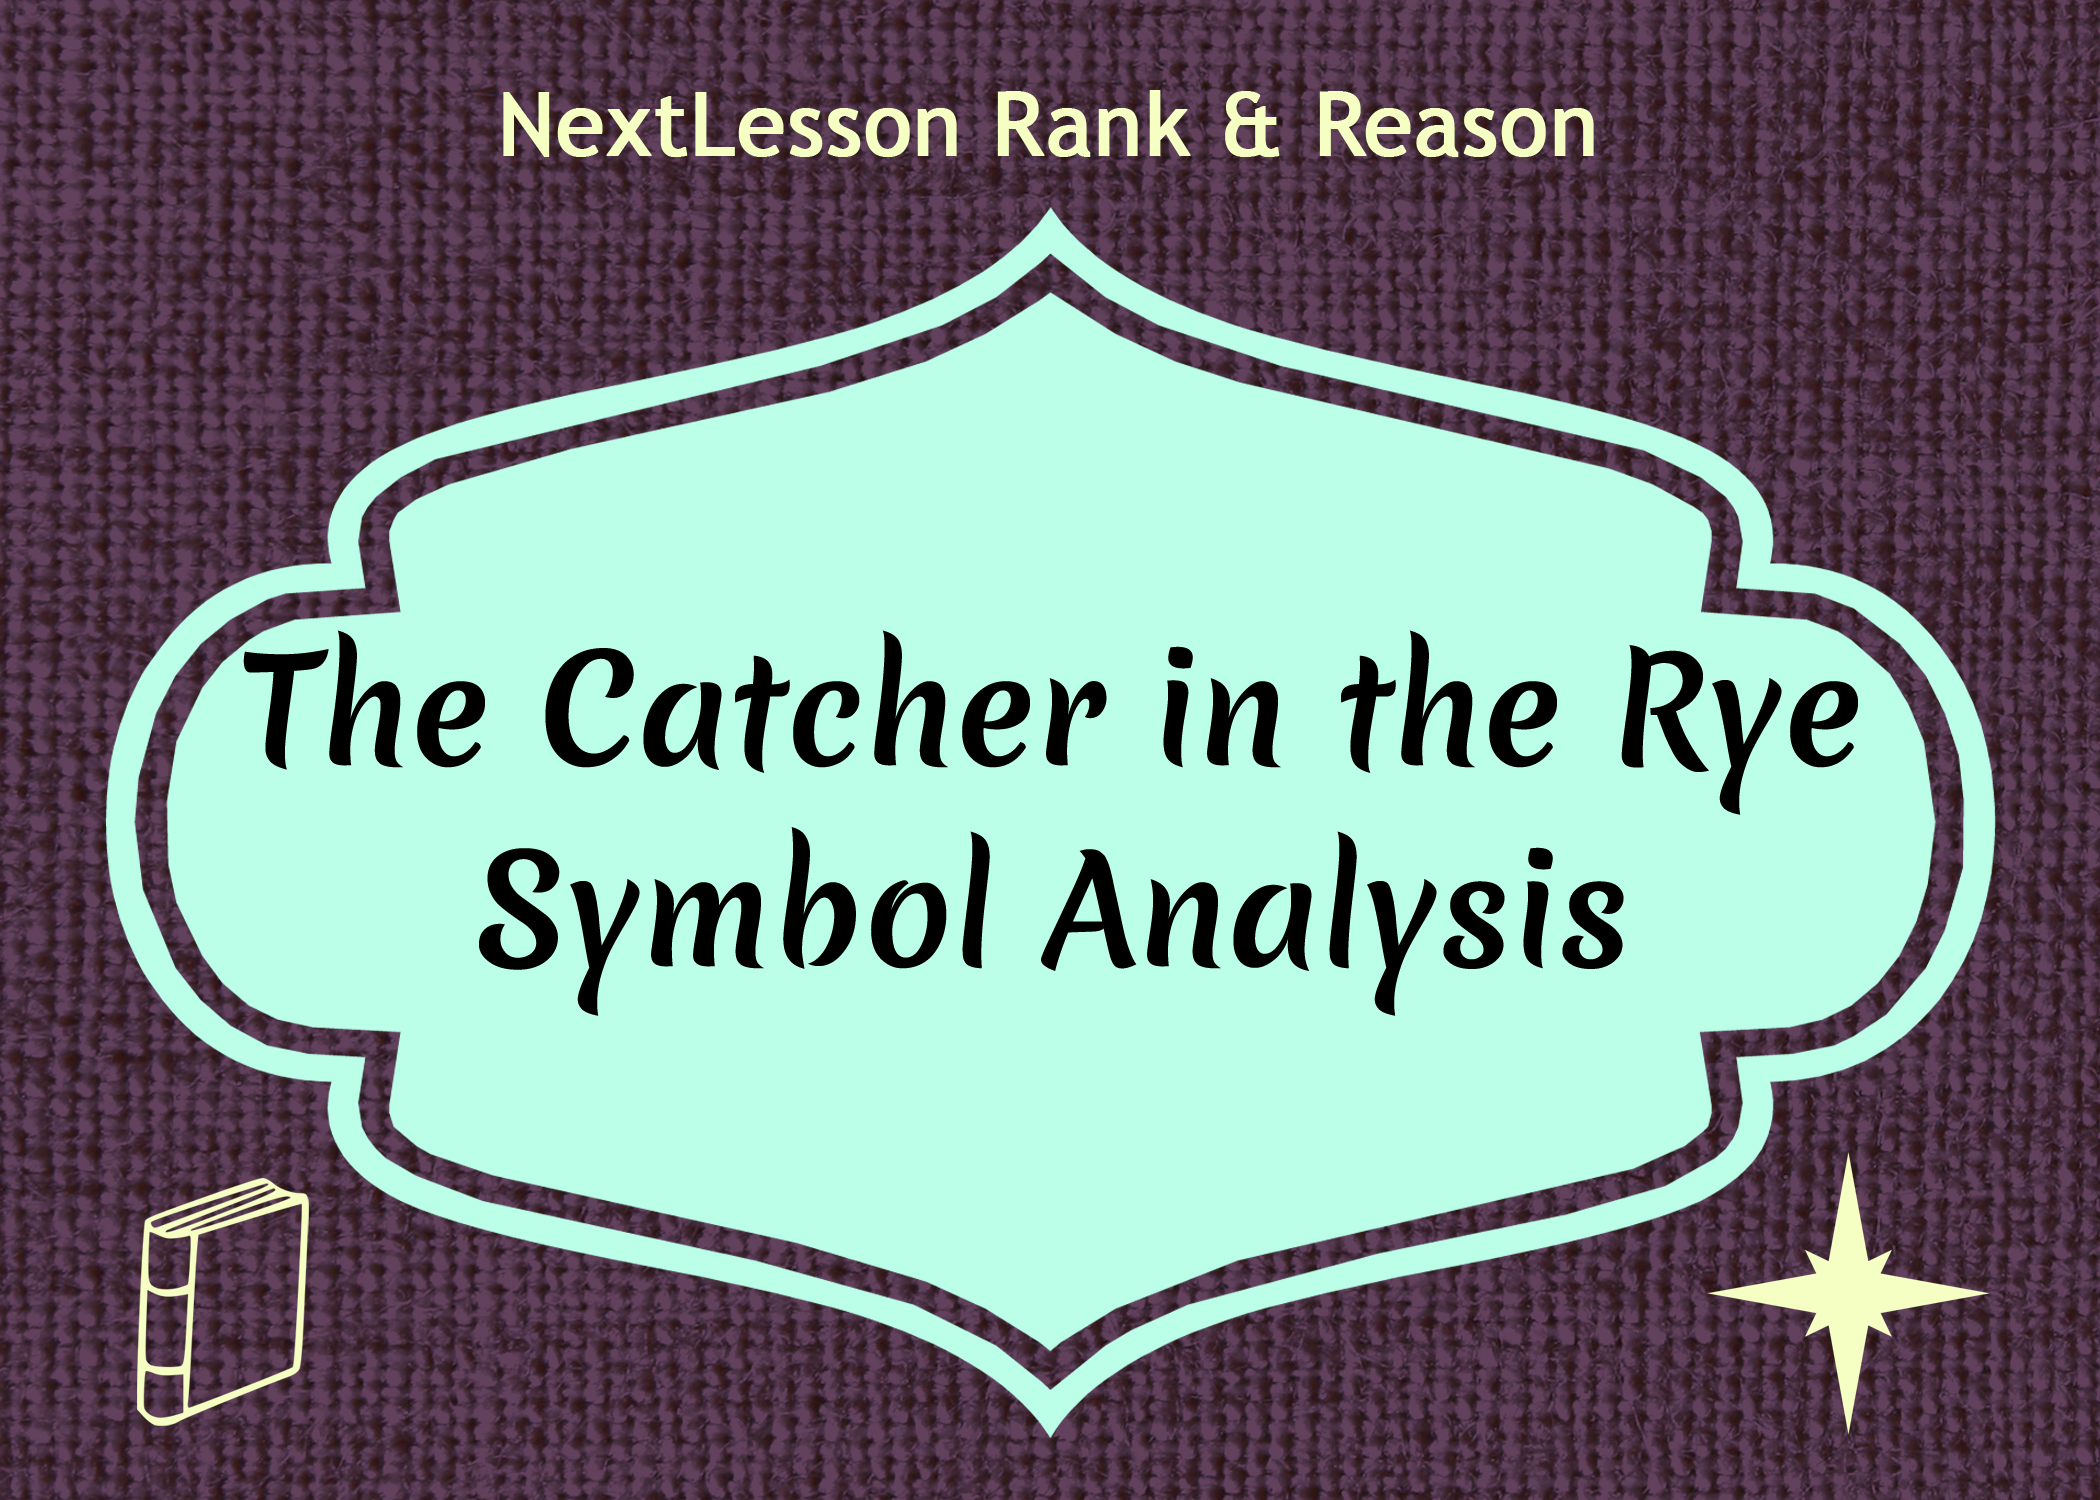 an analysis of the dreams of j d salingers the catcher in the rye Find free critical analysis of the catcher and the rye understanding holden caulfield understanding holden caulfield in jd salingers the catcher in the rye j.